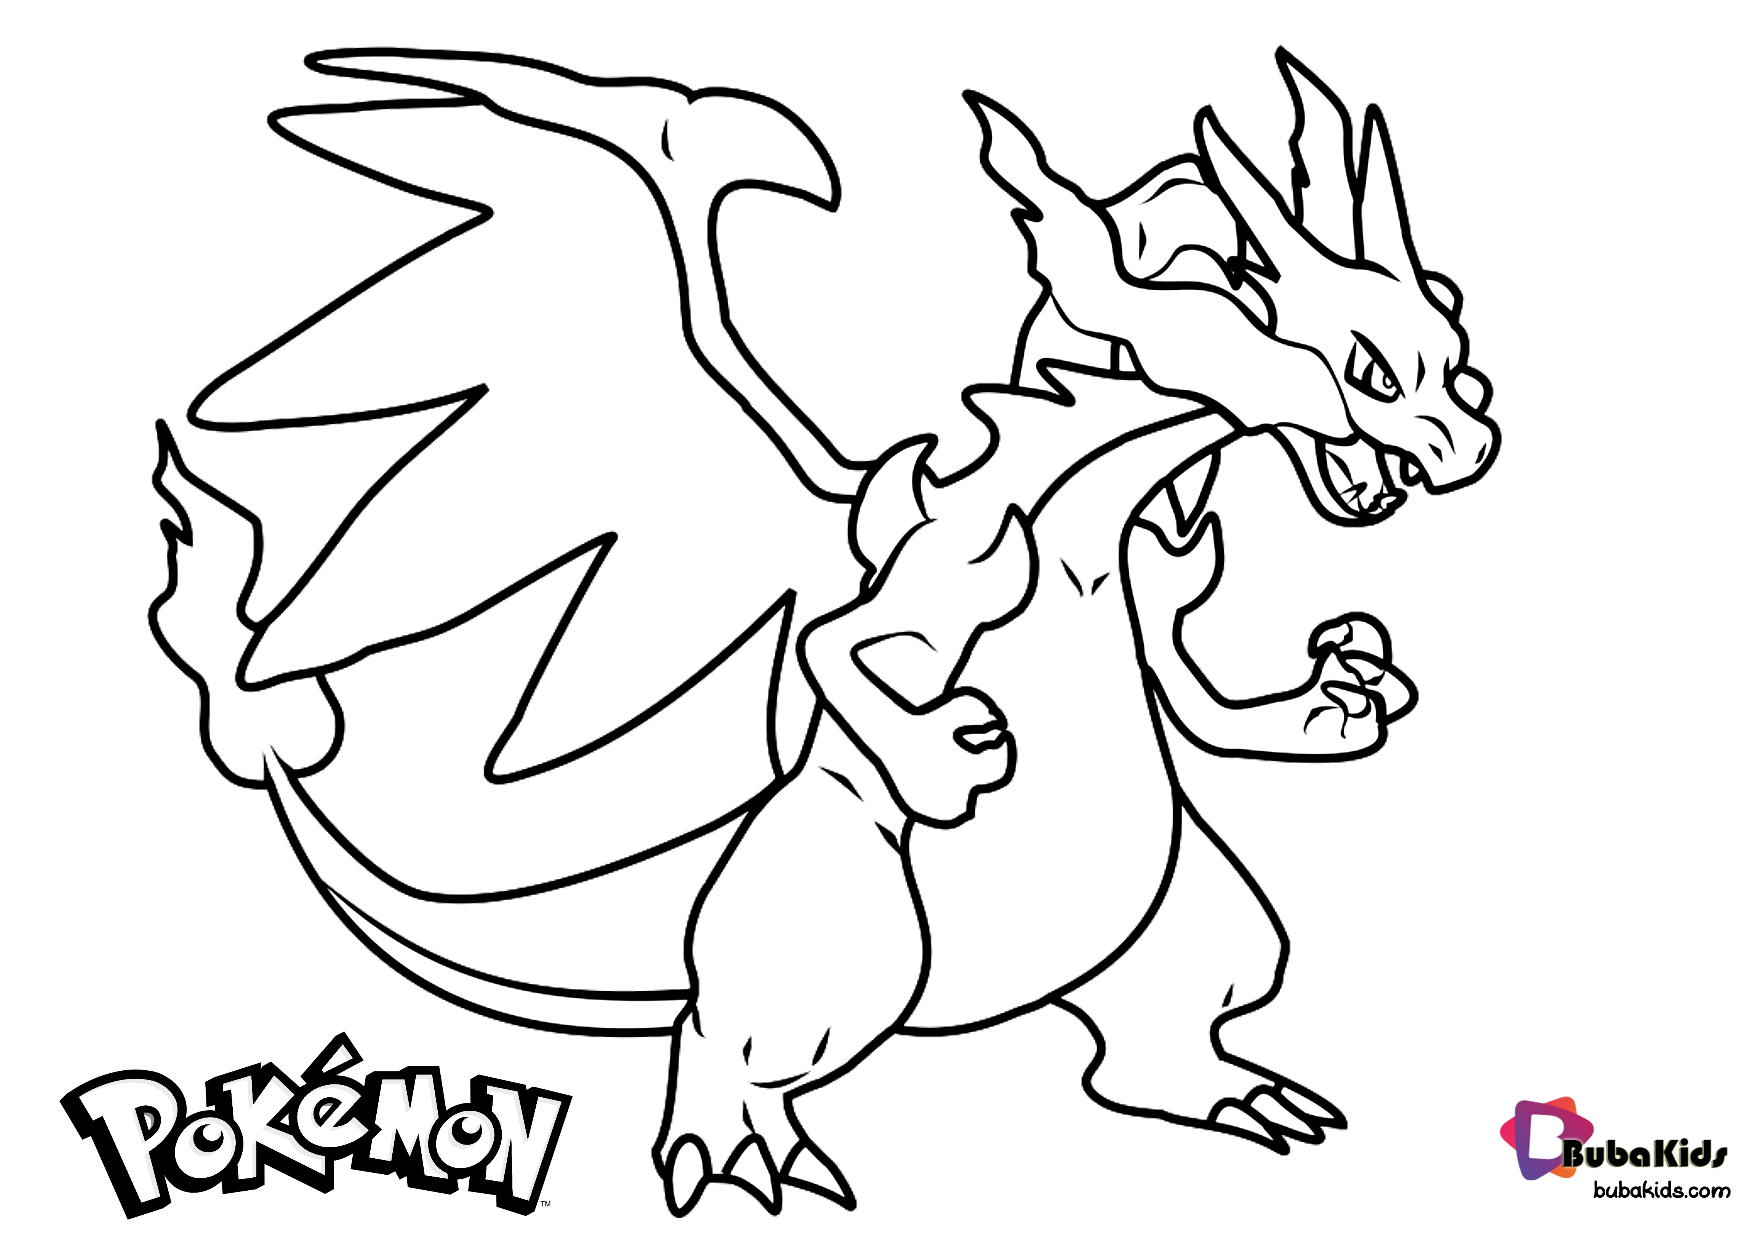 Free download Pokemon Charizard coloring page Wallpaper